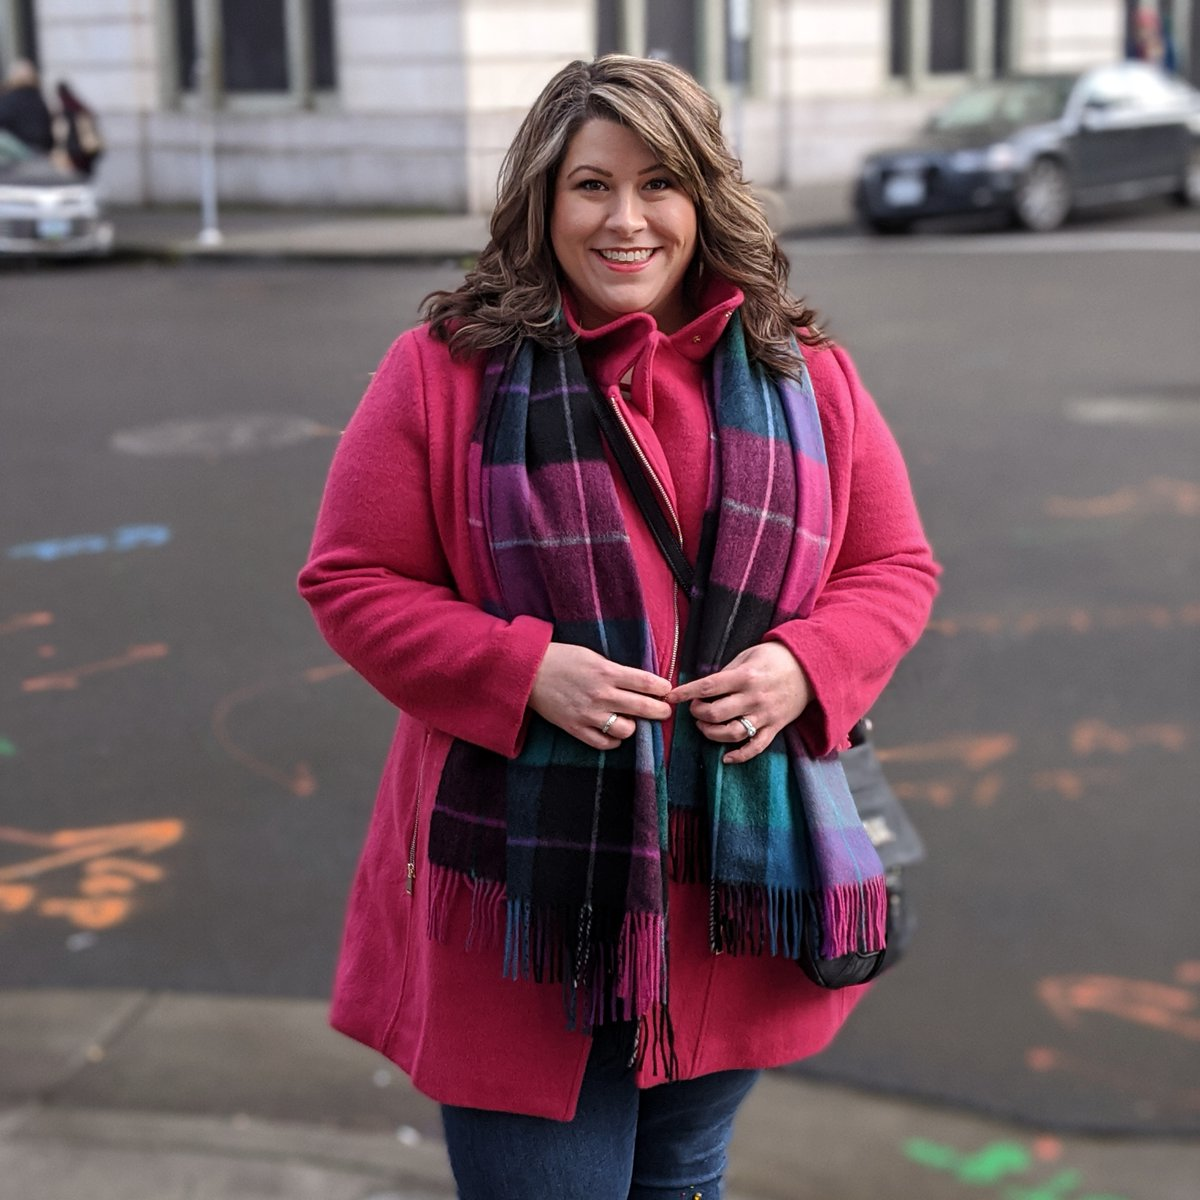 I'm feeling like a cool city chick in my @LOFT moto coat! This coat is on sale for $54 through Feb. 19th!! (Regular $198) Available in sizes XXS to 26!   Shop: https://soo.nr/EkpN Review: https://soo.nr/vxsh #CelebrateMySize #plussizeblogger #plussizefashion #psootdpic.twitter.com/1hd3ScB58z